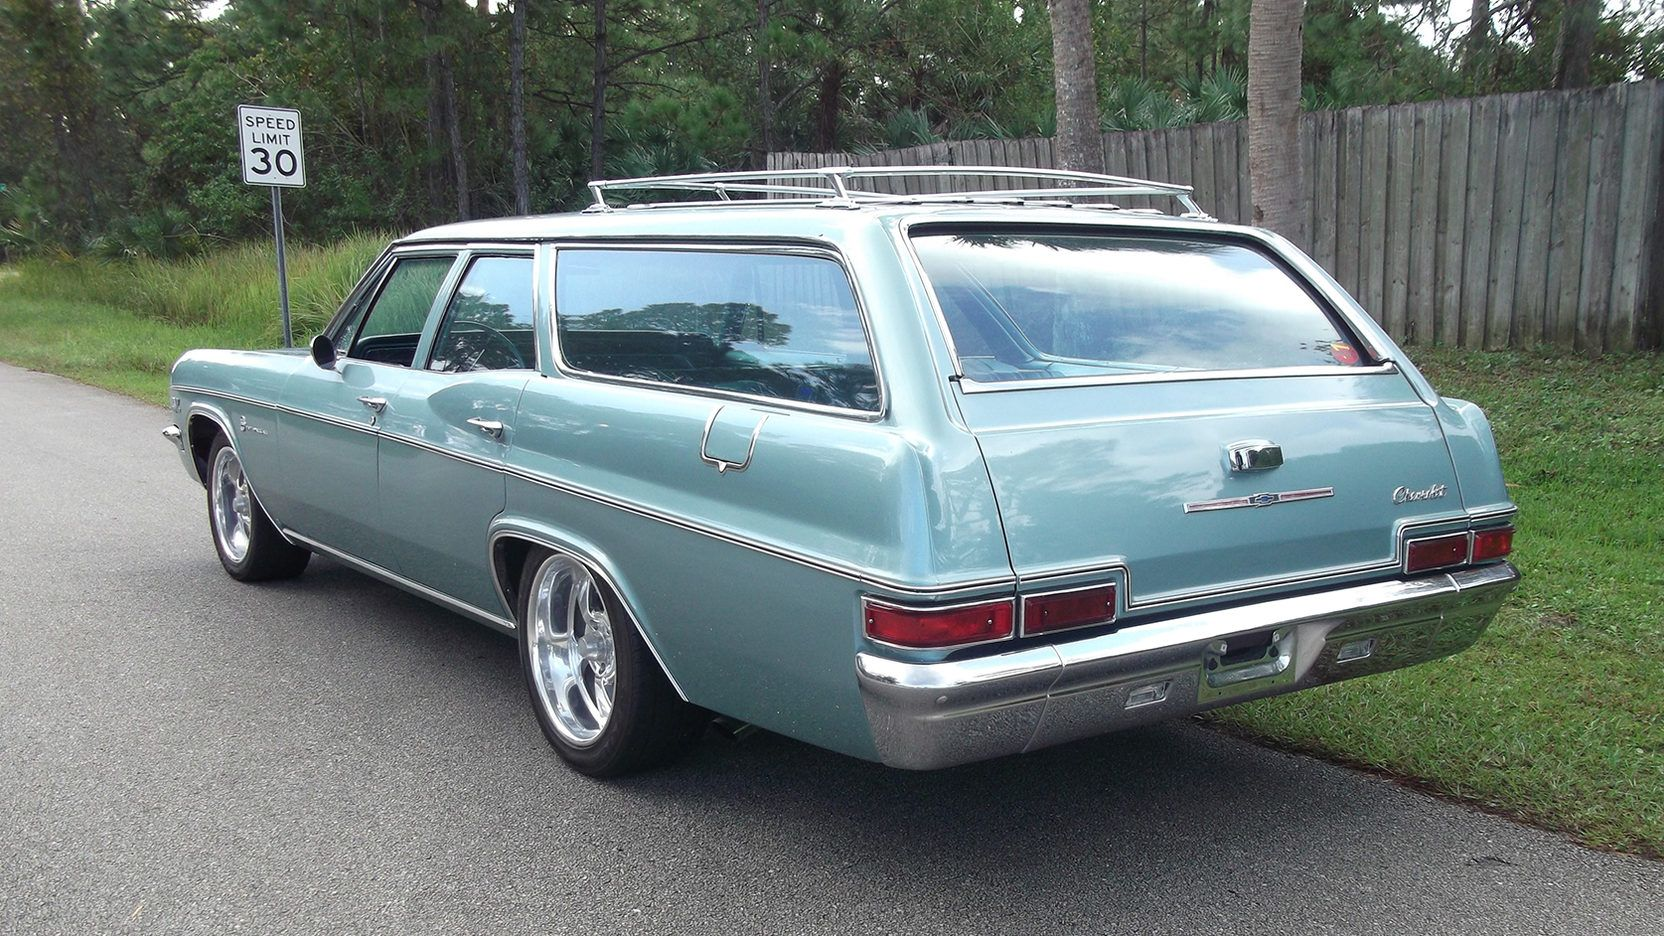 1966 Chevrolet Bel Air Station Wagon Station Wagon Cars Station